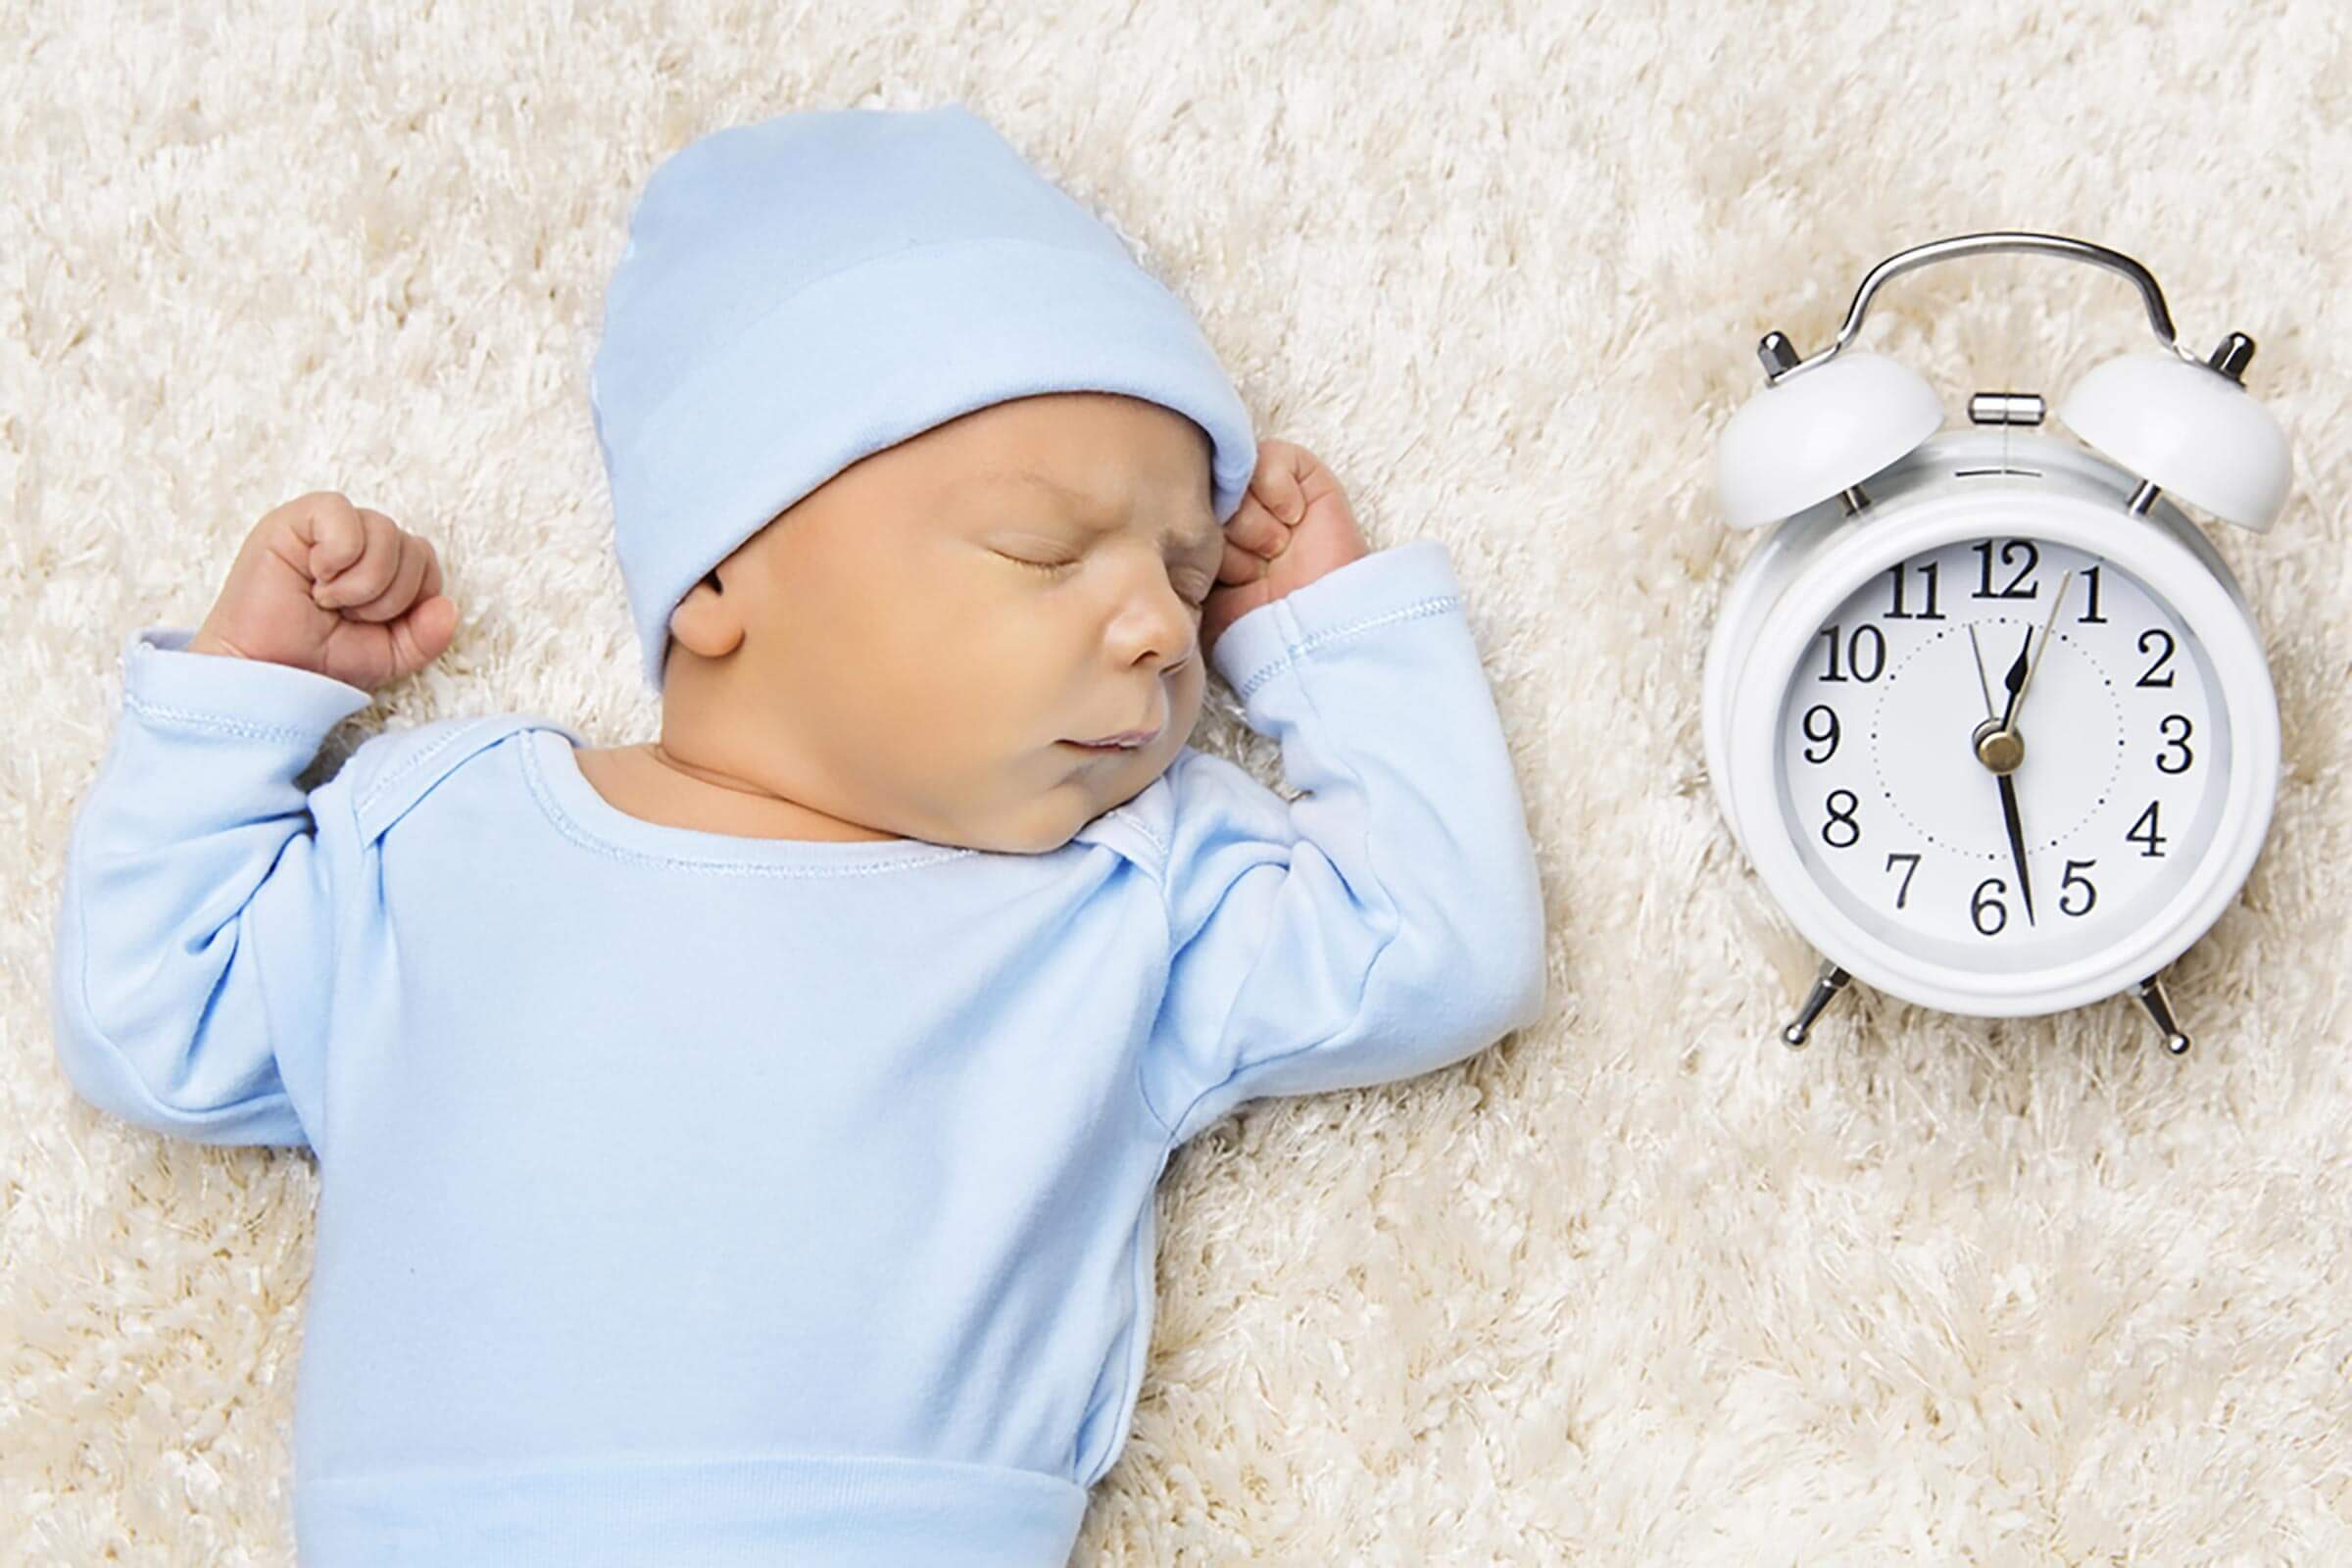 why most babies are born at 8:00 in the morning | reader's digest